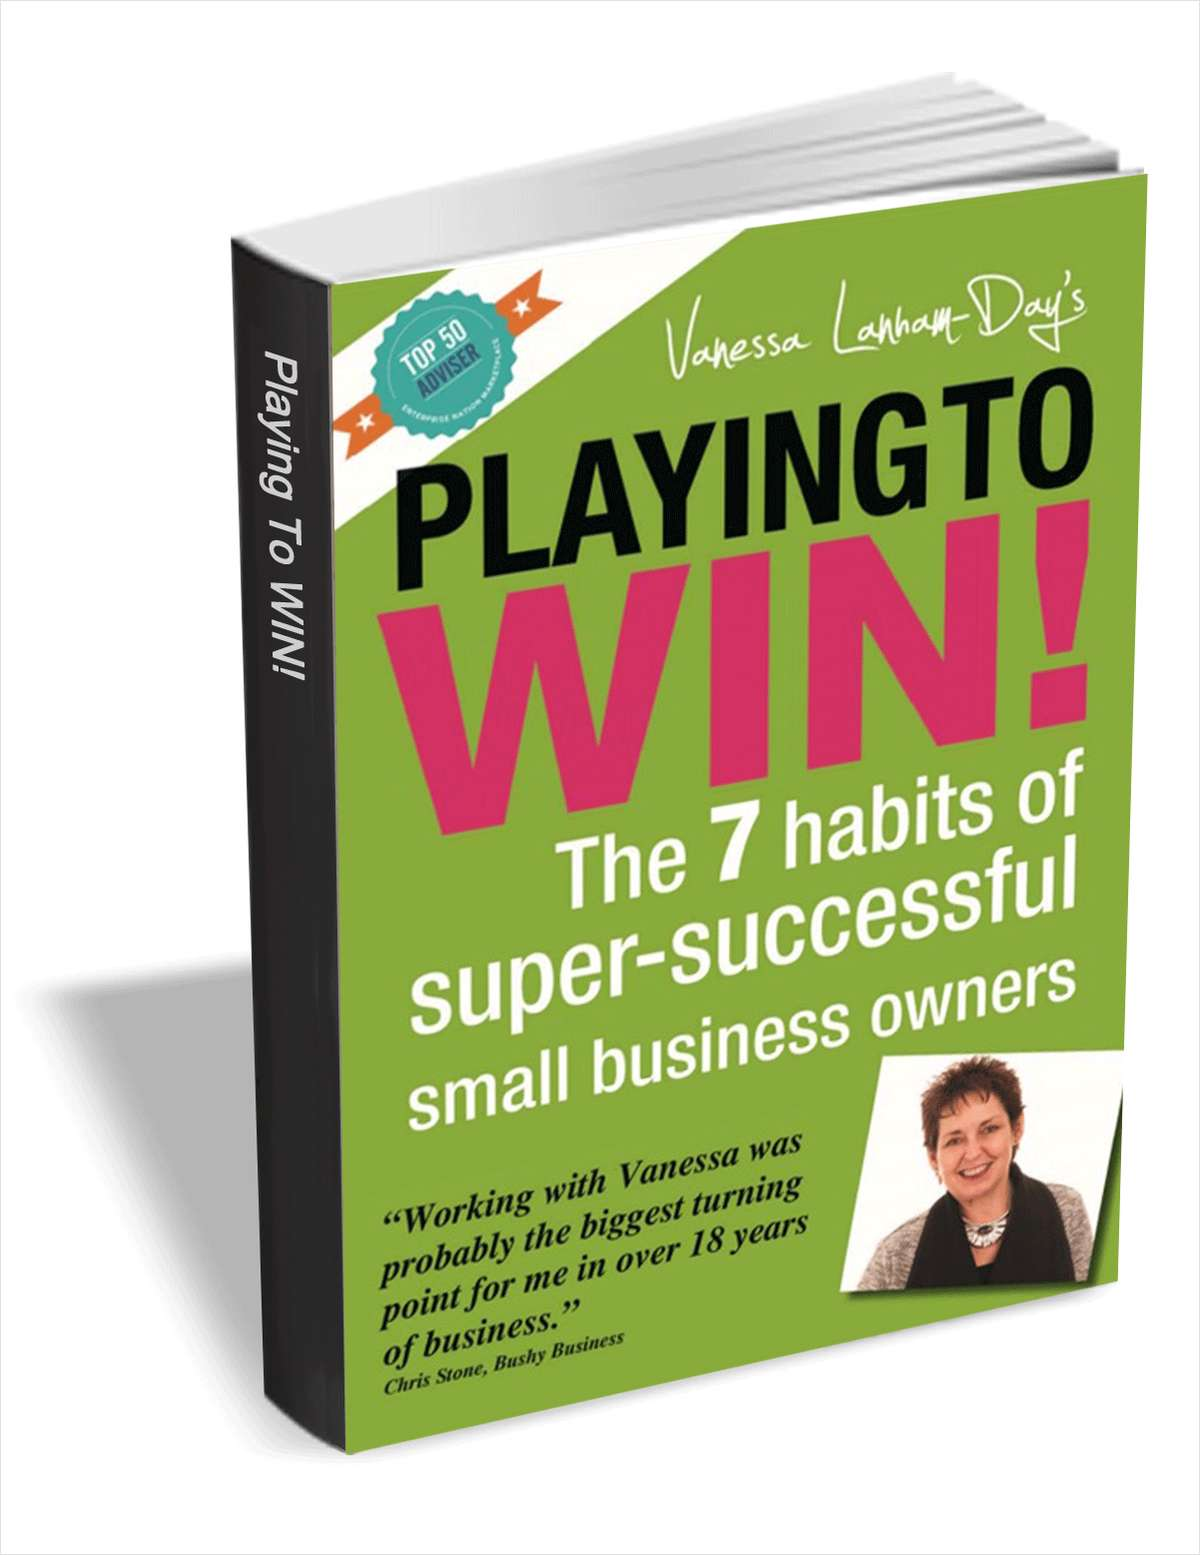 Playing to Win - The 7 Habits of Super Successful Small Business Owners